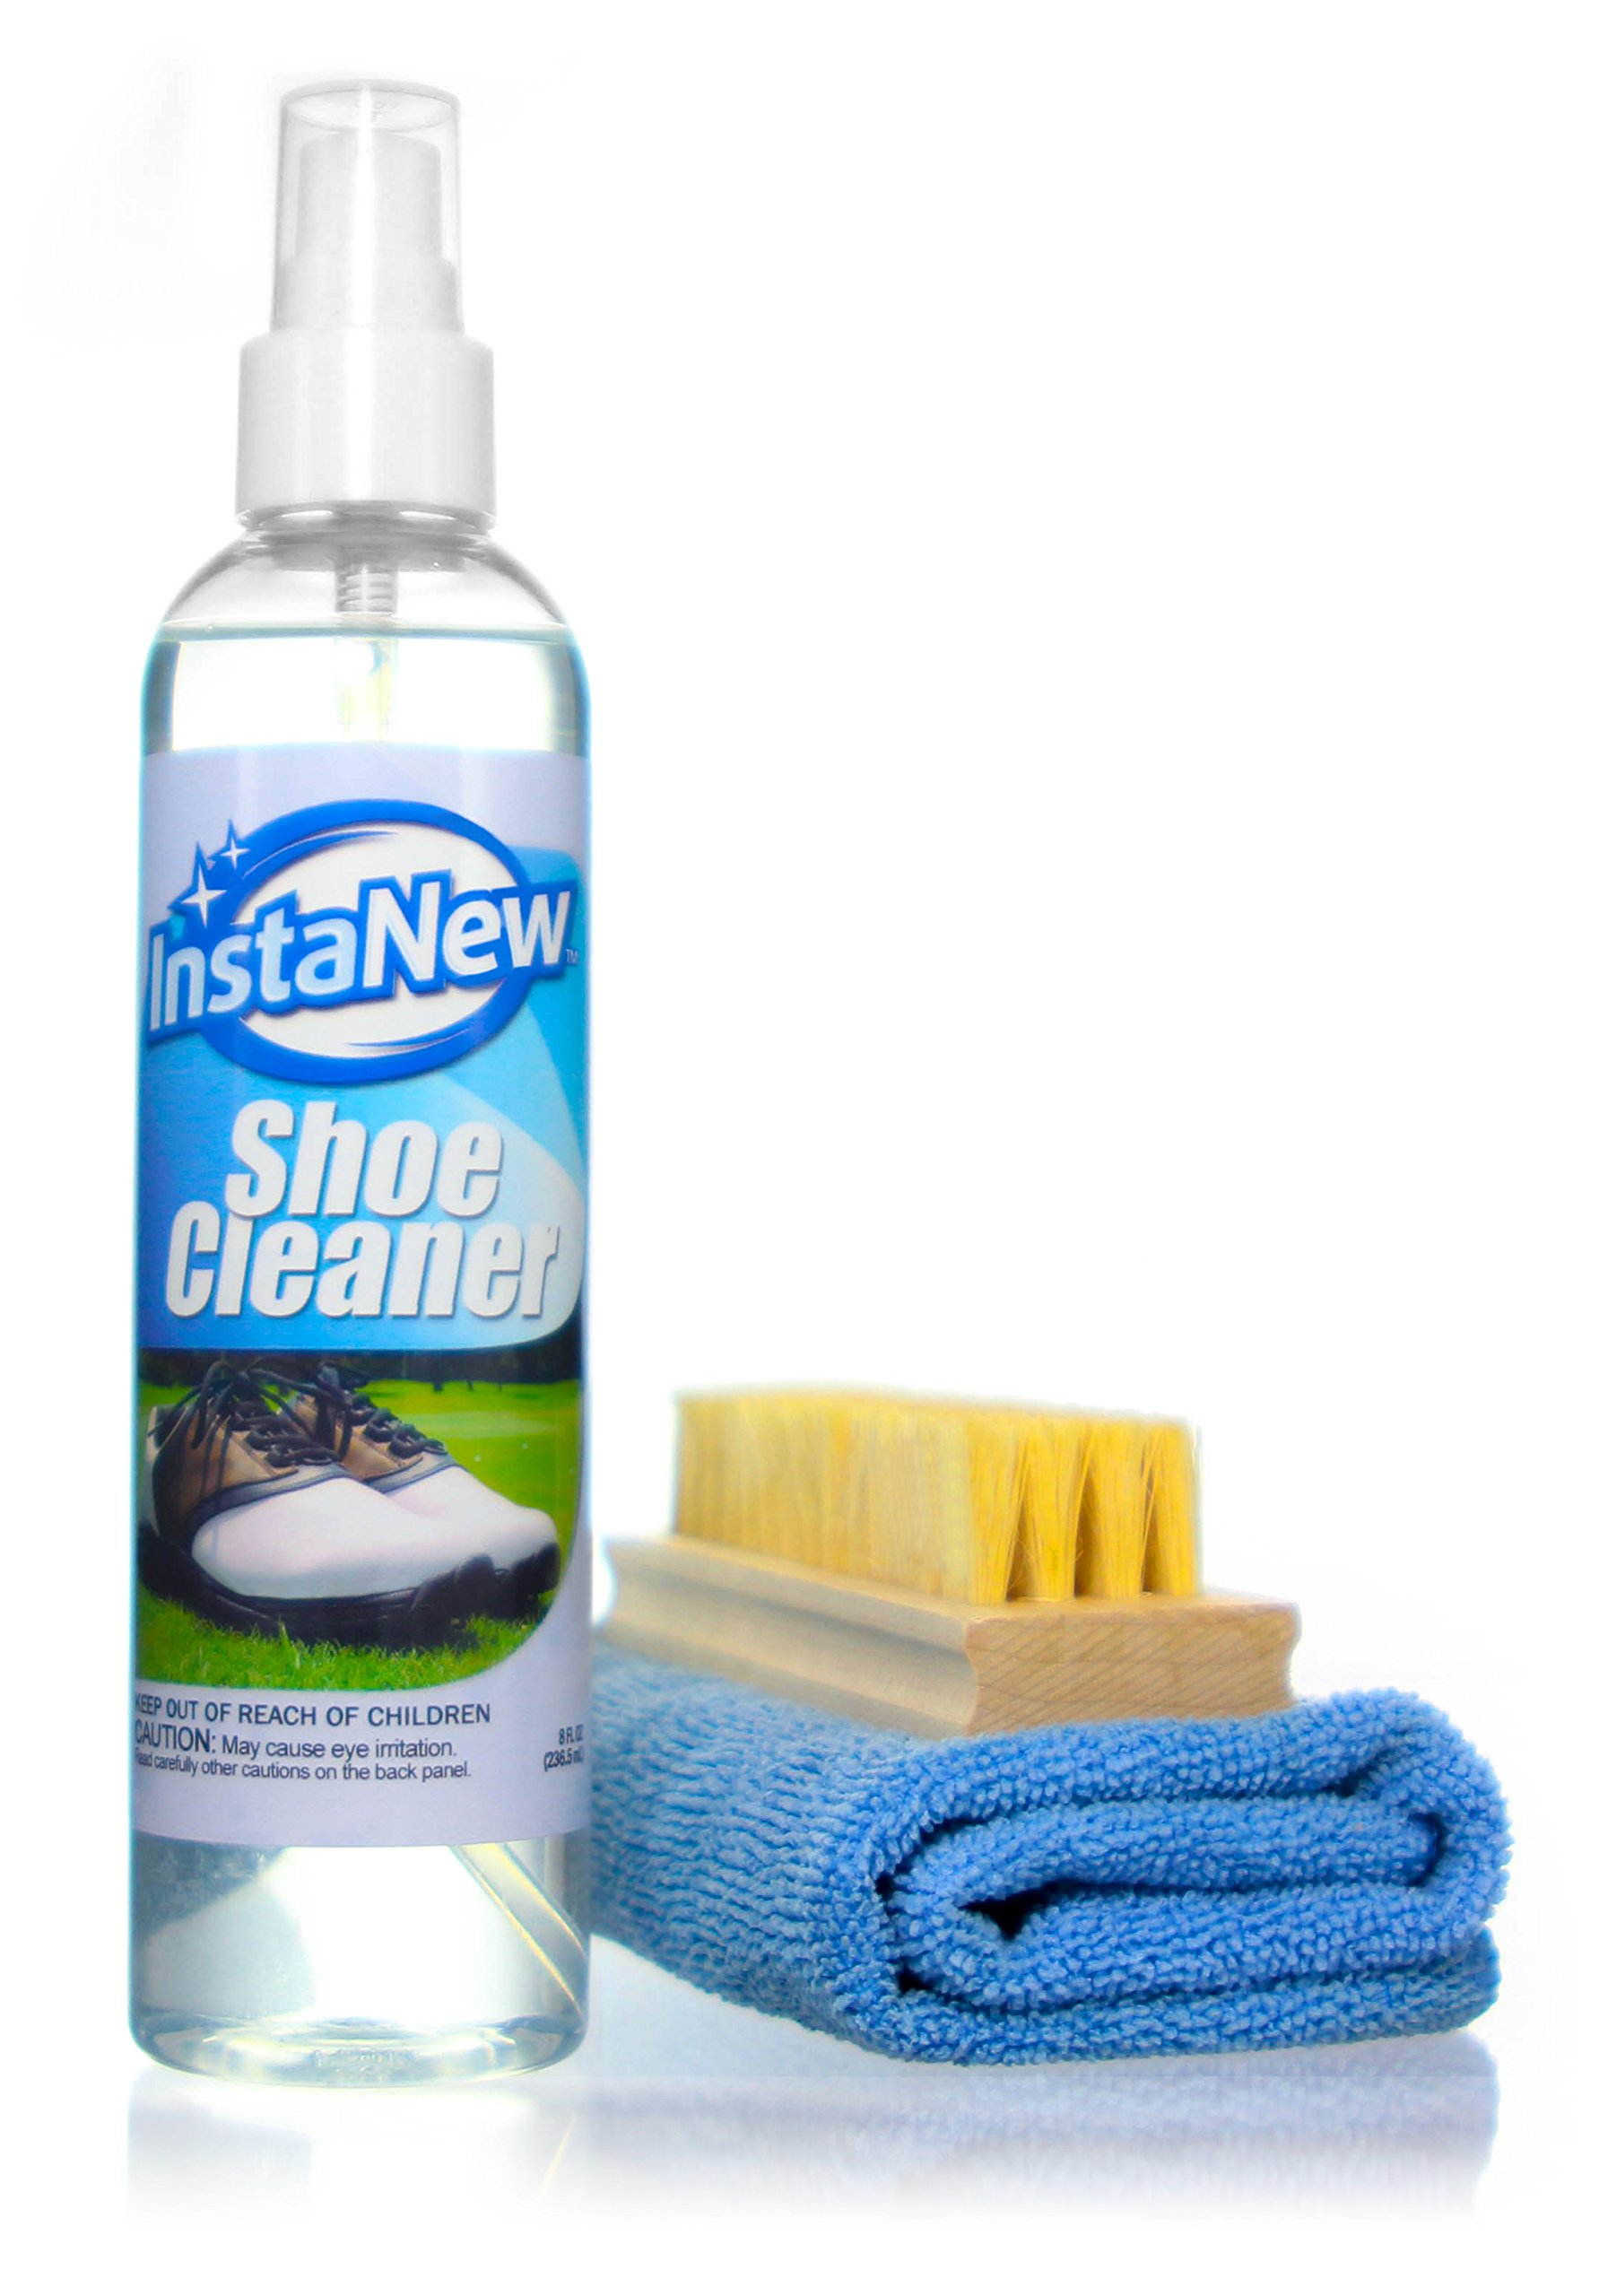 InstaNew Shoe Cleaner Kit by Includes Premium Brush and Microfiber Cloth for All Shoe Types